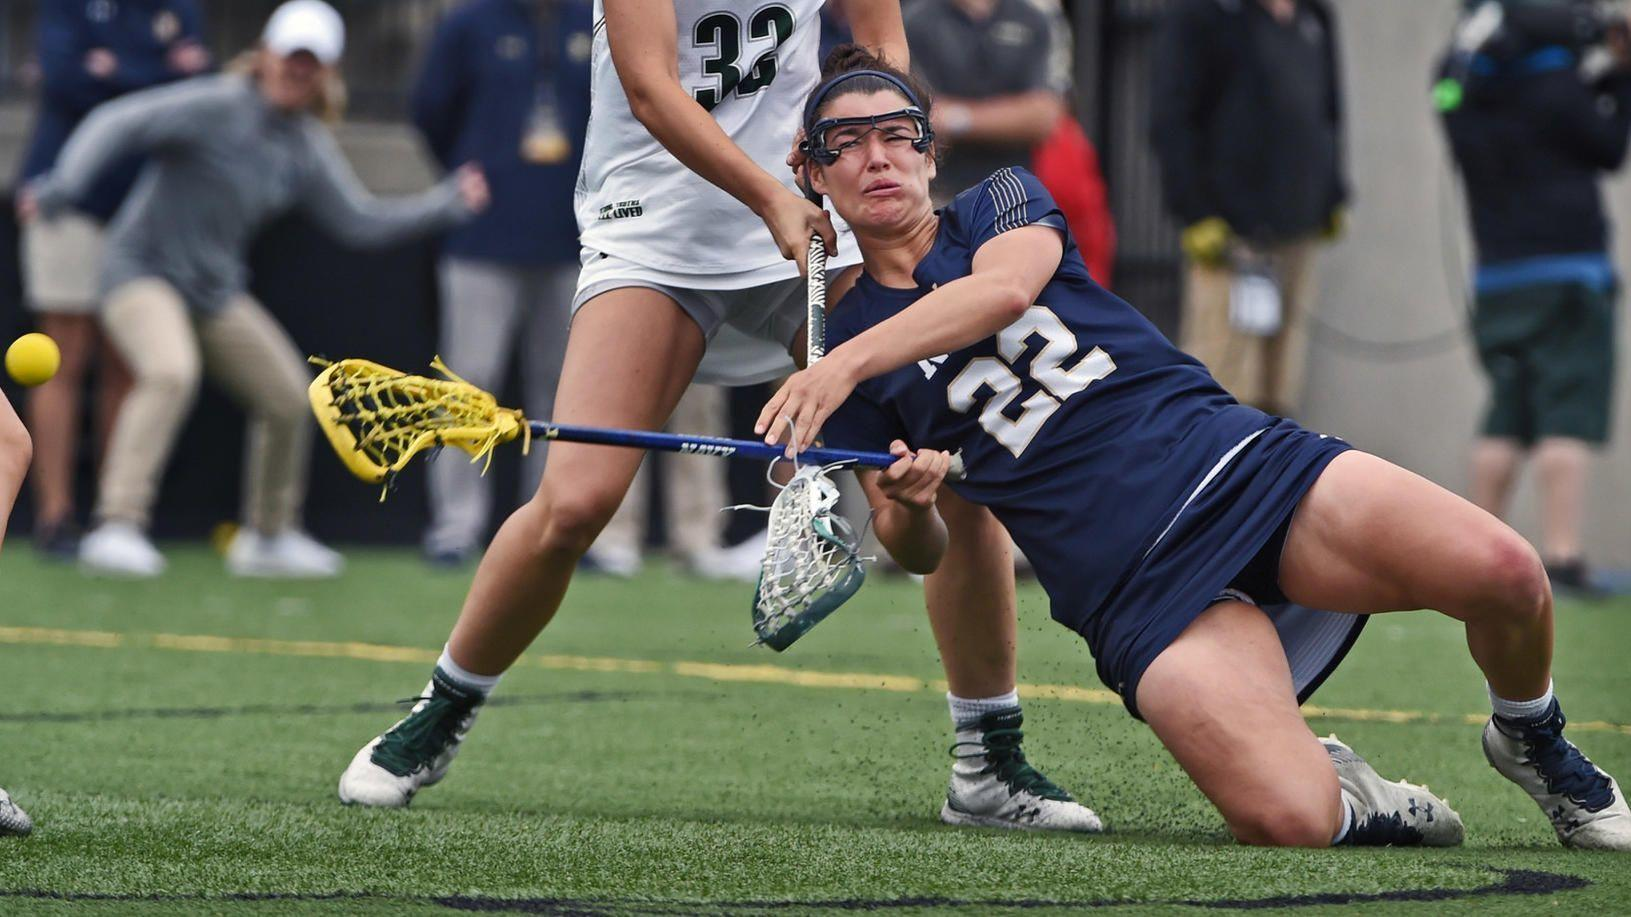 Navy upsets Loyola for second year in row to win Patriot ...